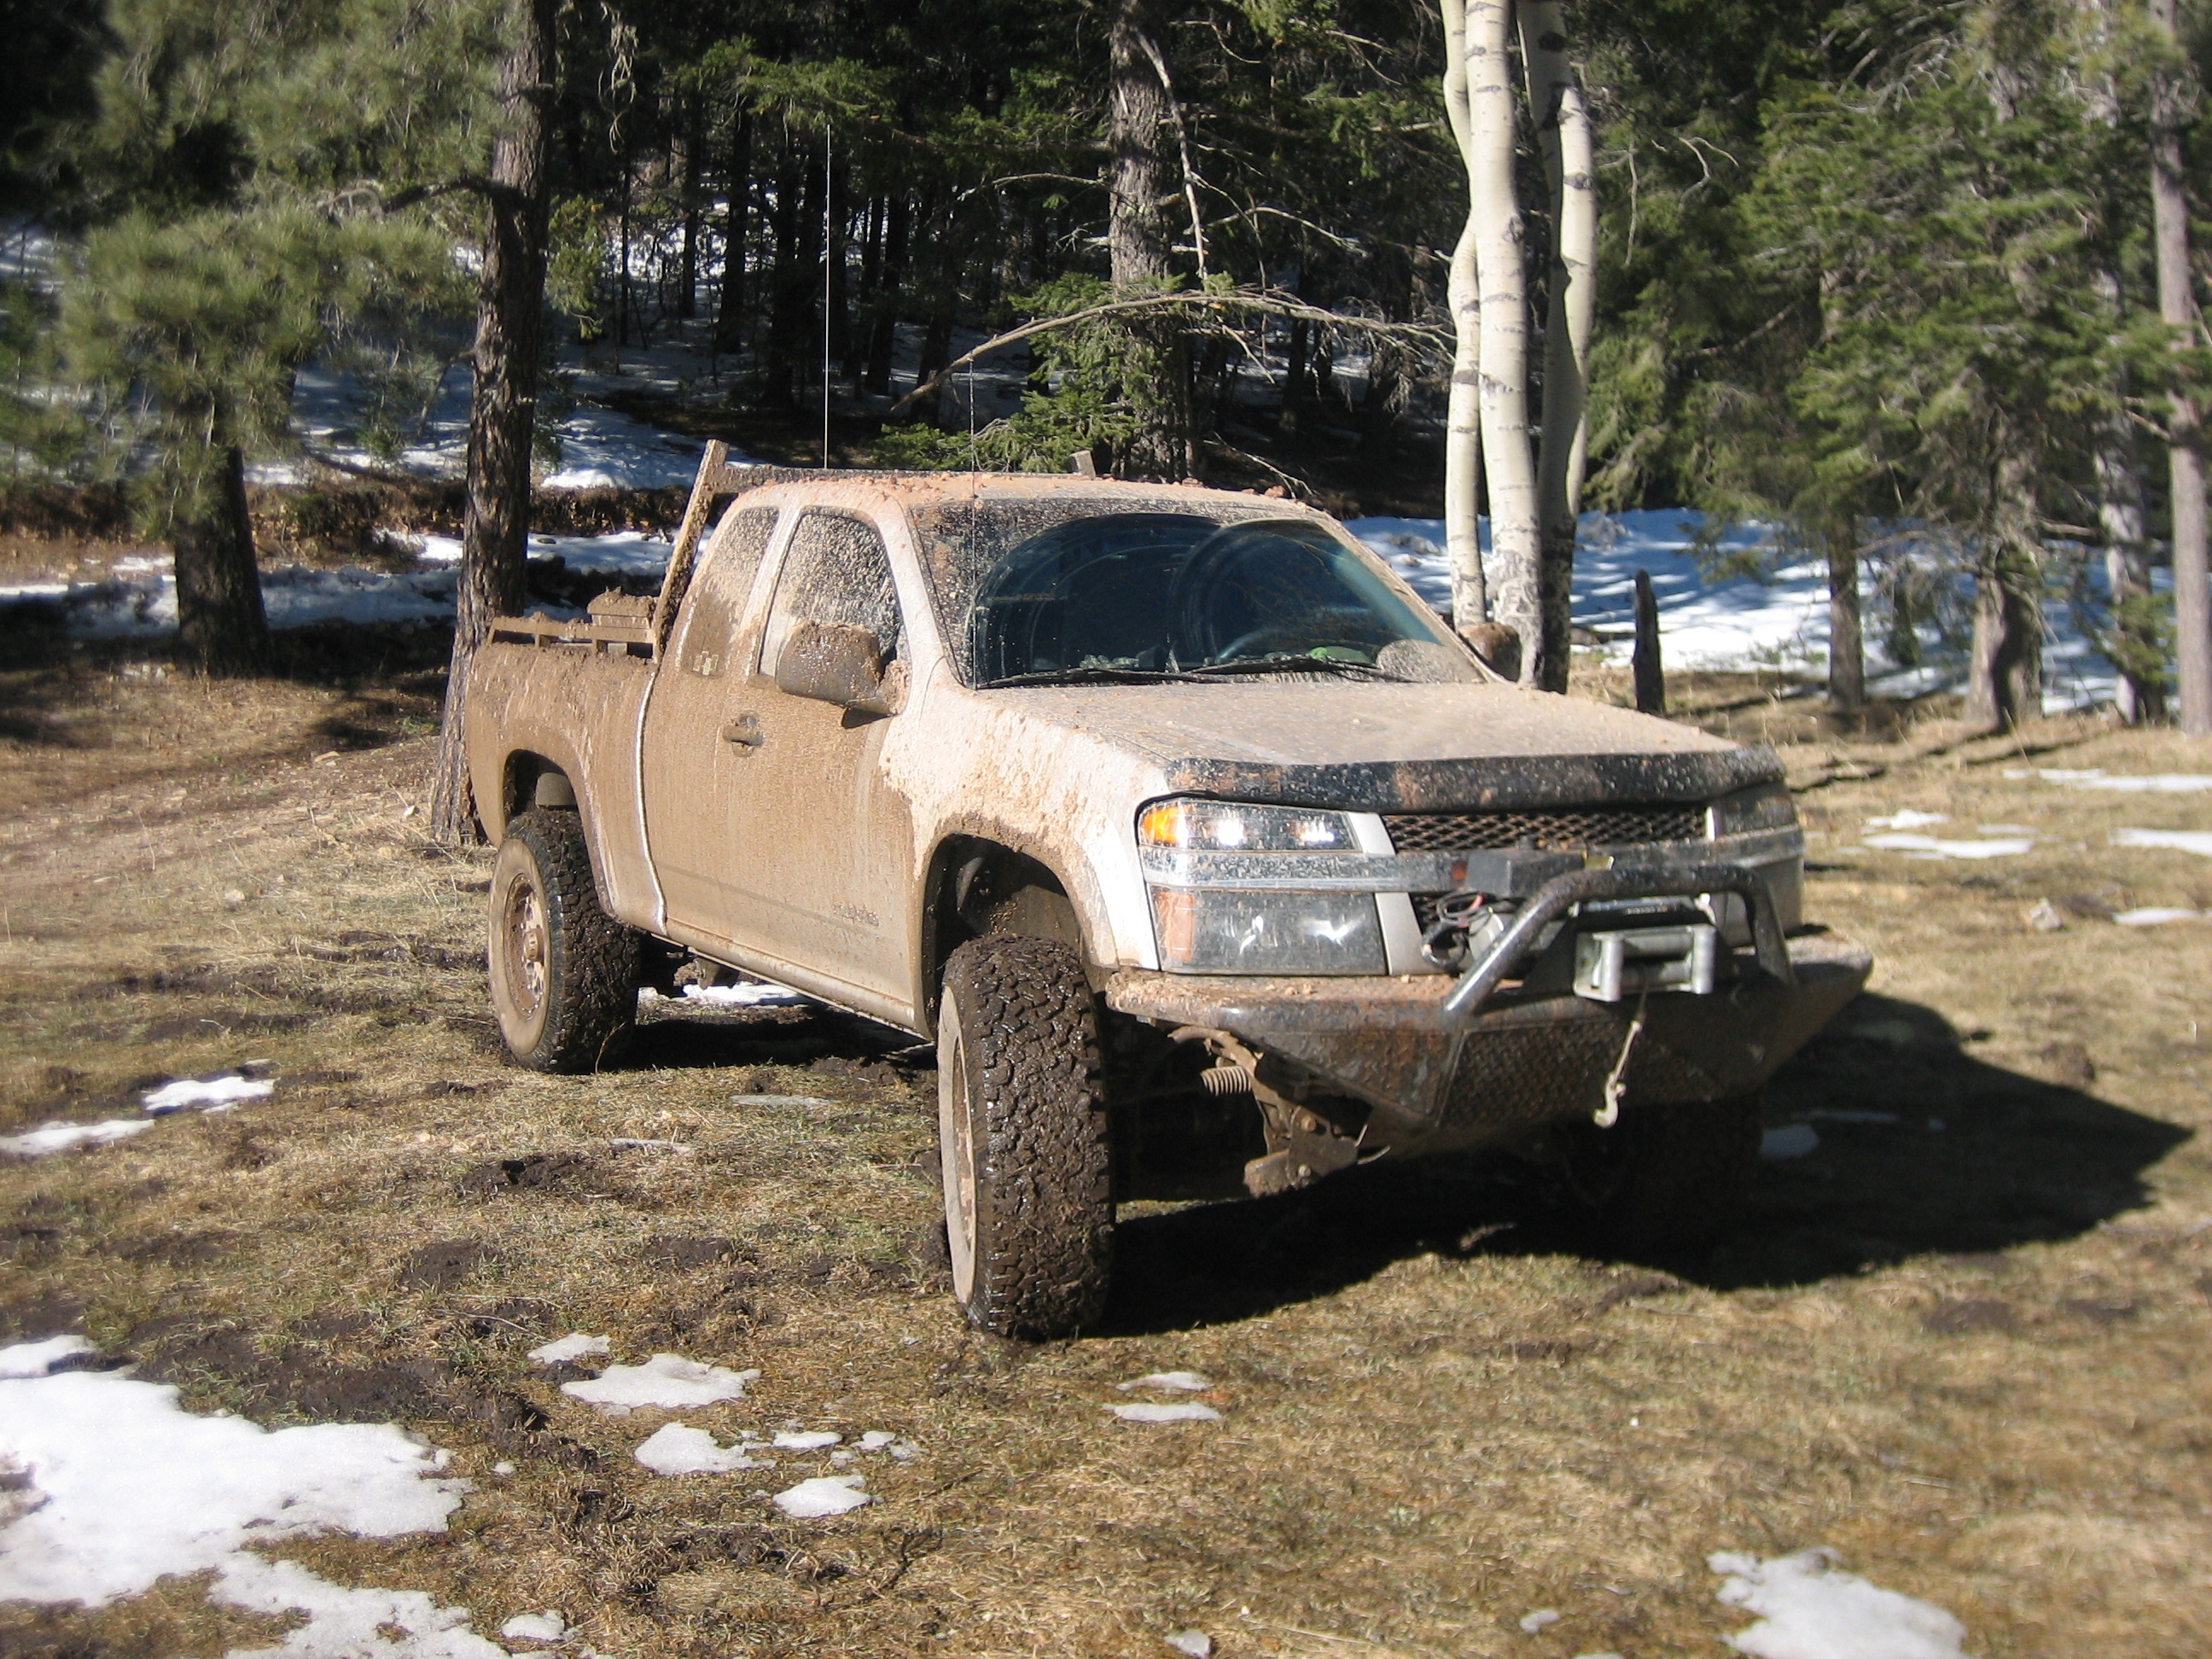 K_RADO 2005 Chevrolet Colorado Regular Cab 11187093